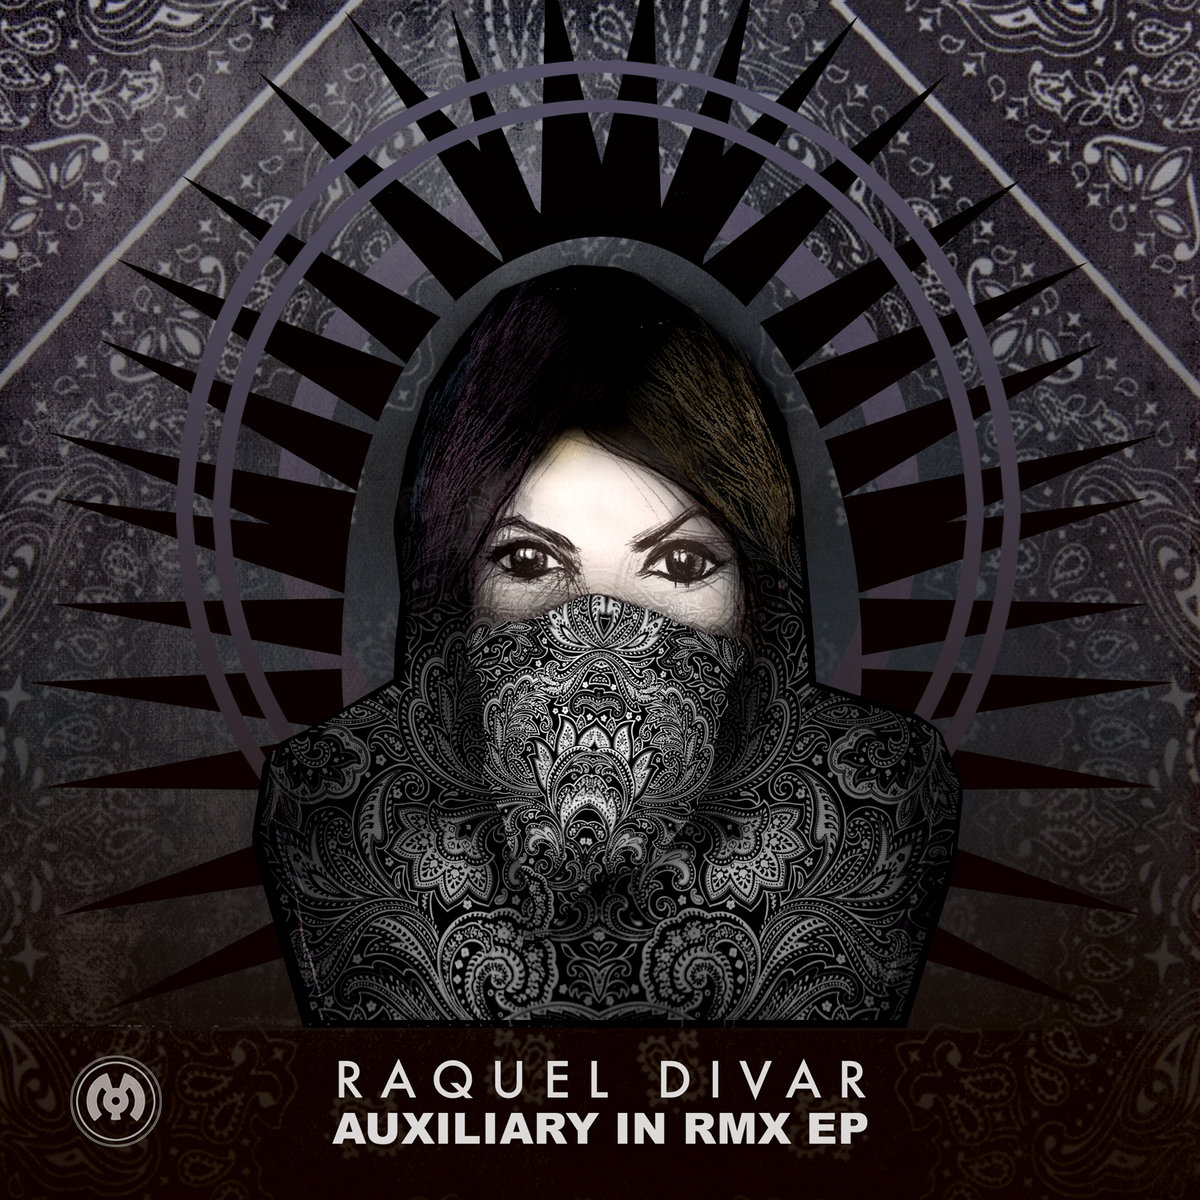 Raquel Divar - Auxilary In Remix @ 'Auxilary In Remix' album (electronic, dubstep)